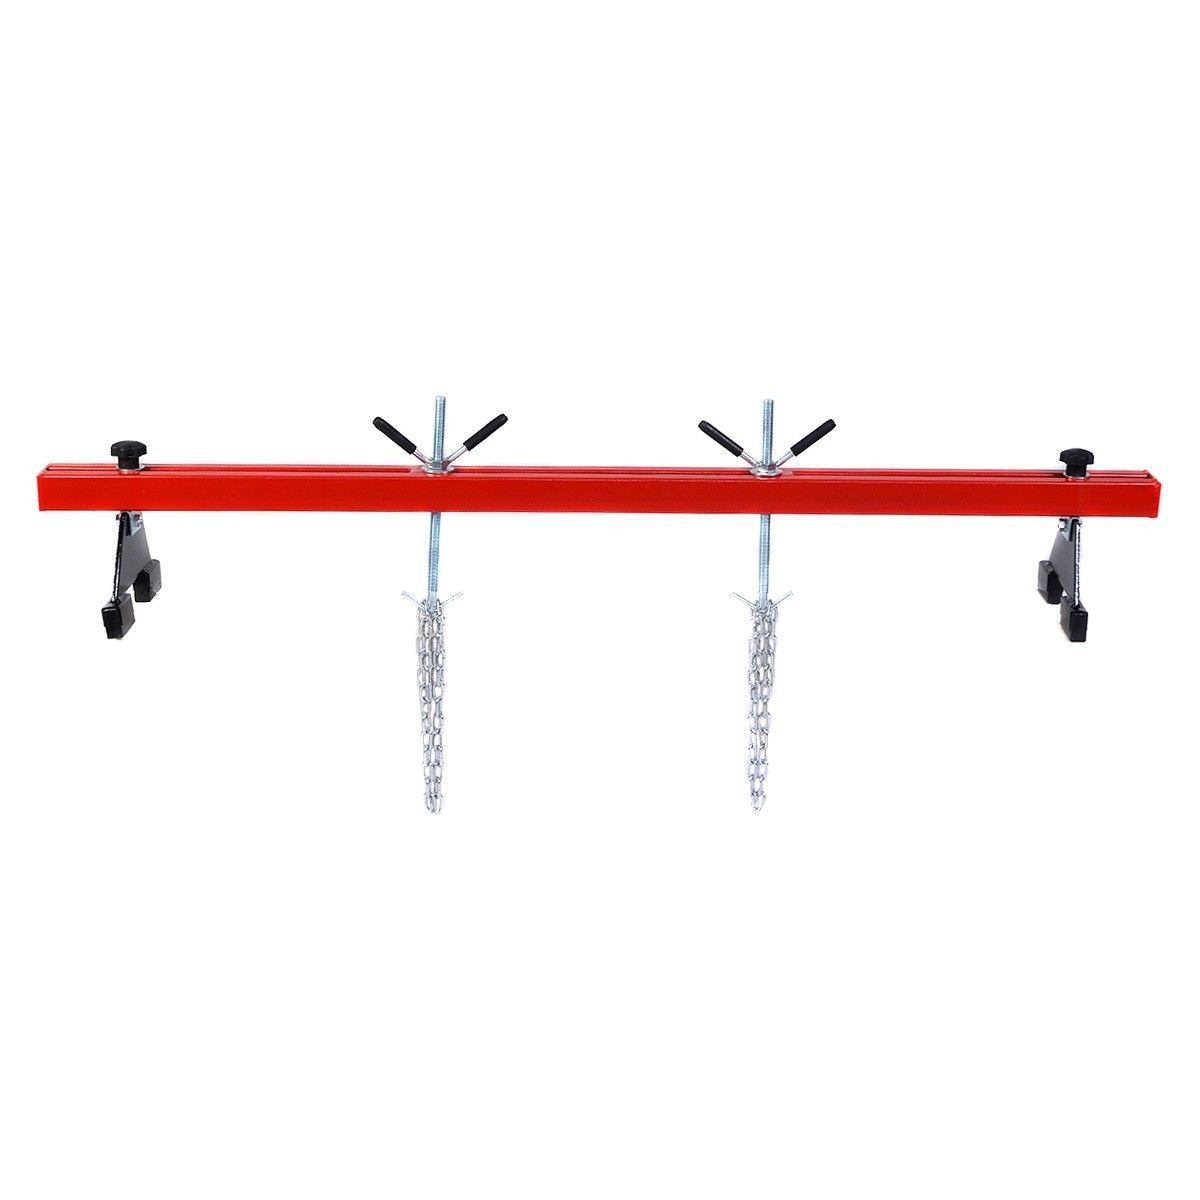 Tooljoys Engine Load Leveler 1100lbs Capacity Support Bar Transmission w/Dual Hook